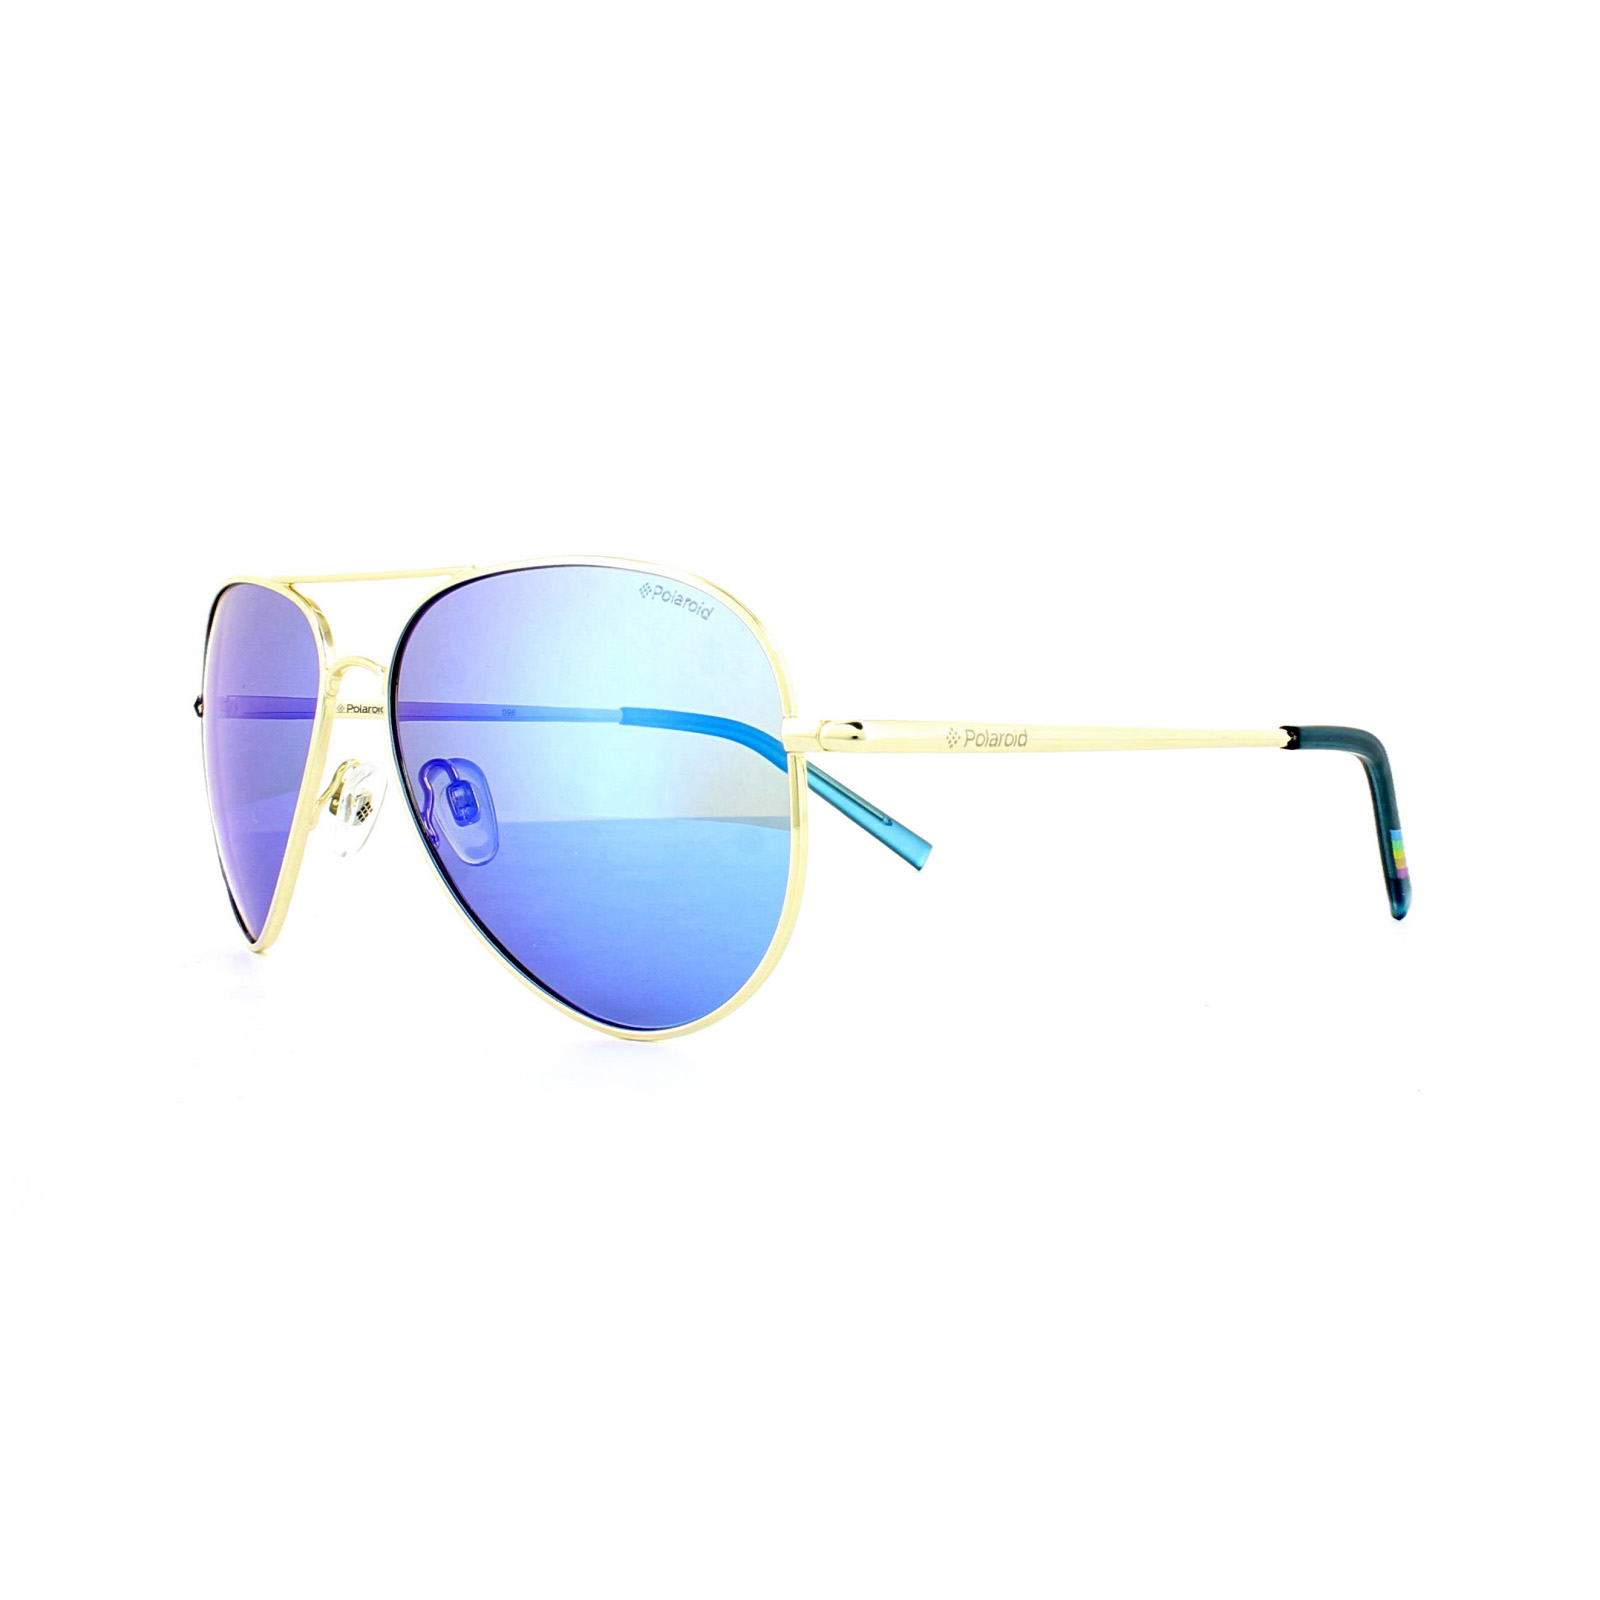 ed9e417f53 Sentinel Polaroid Sunglasses 6012 N J5G JY Gold Grey Blue Mirror Polarized